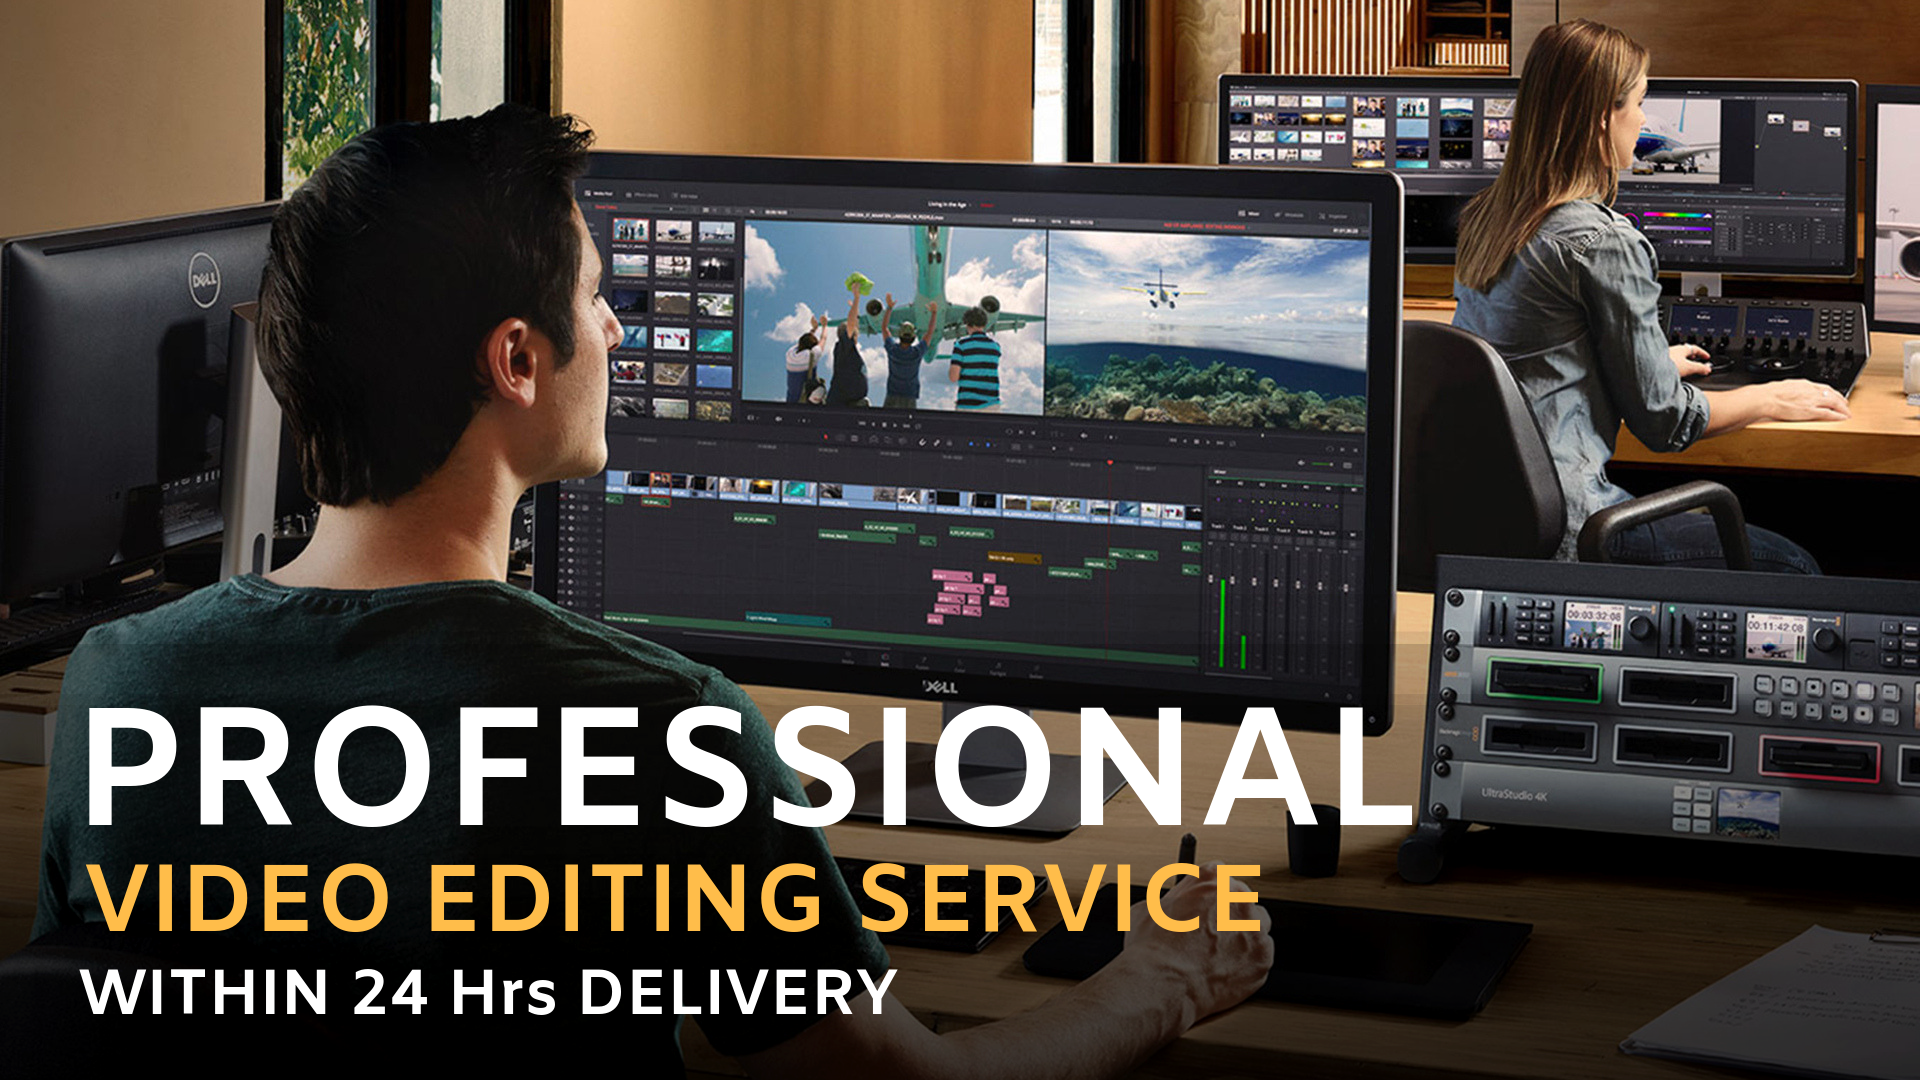 Professional Video Editing - Edit Your Video Professionally